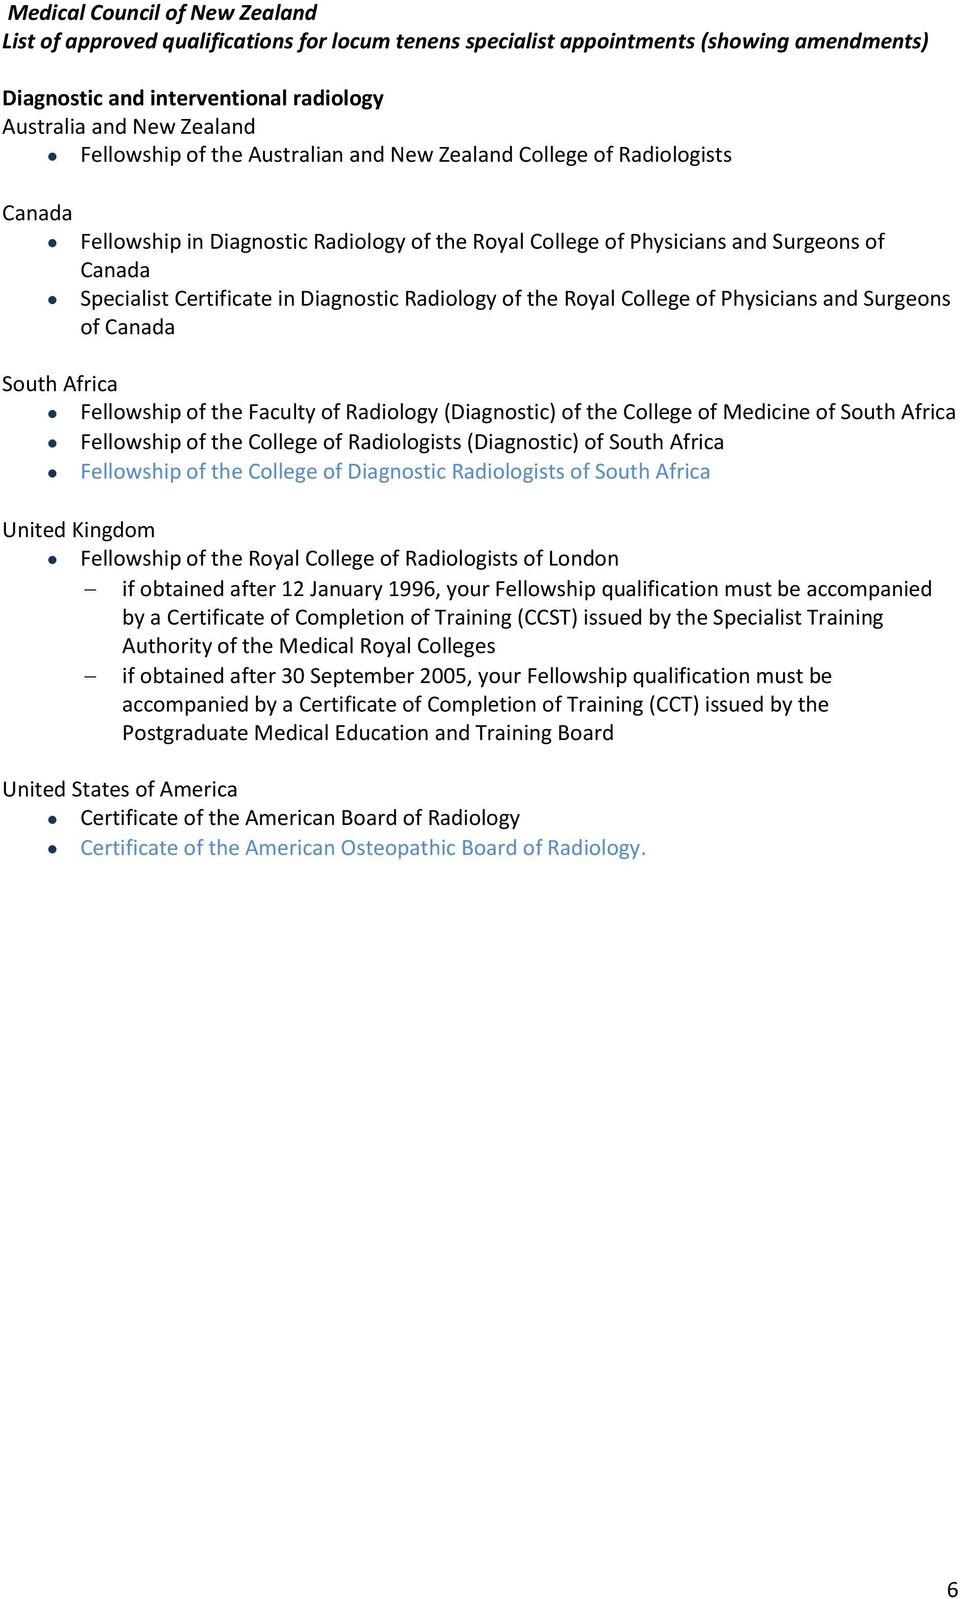 Africa Fellowship of the College of Radiologists (Diagnostic) of South Africa Fellowship of the College of Diagnostic Radiologists of South Africa Fellowship of the Royal College of Radiologists of